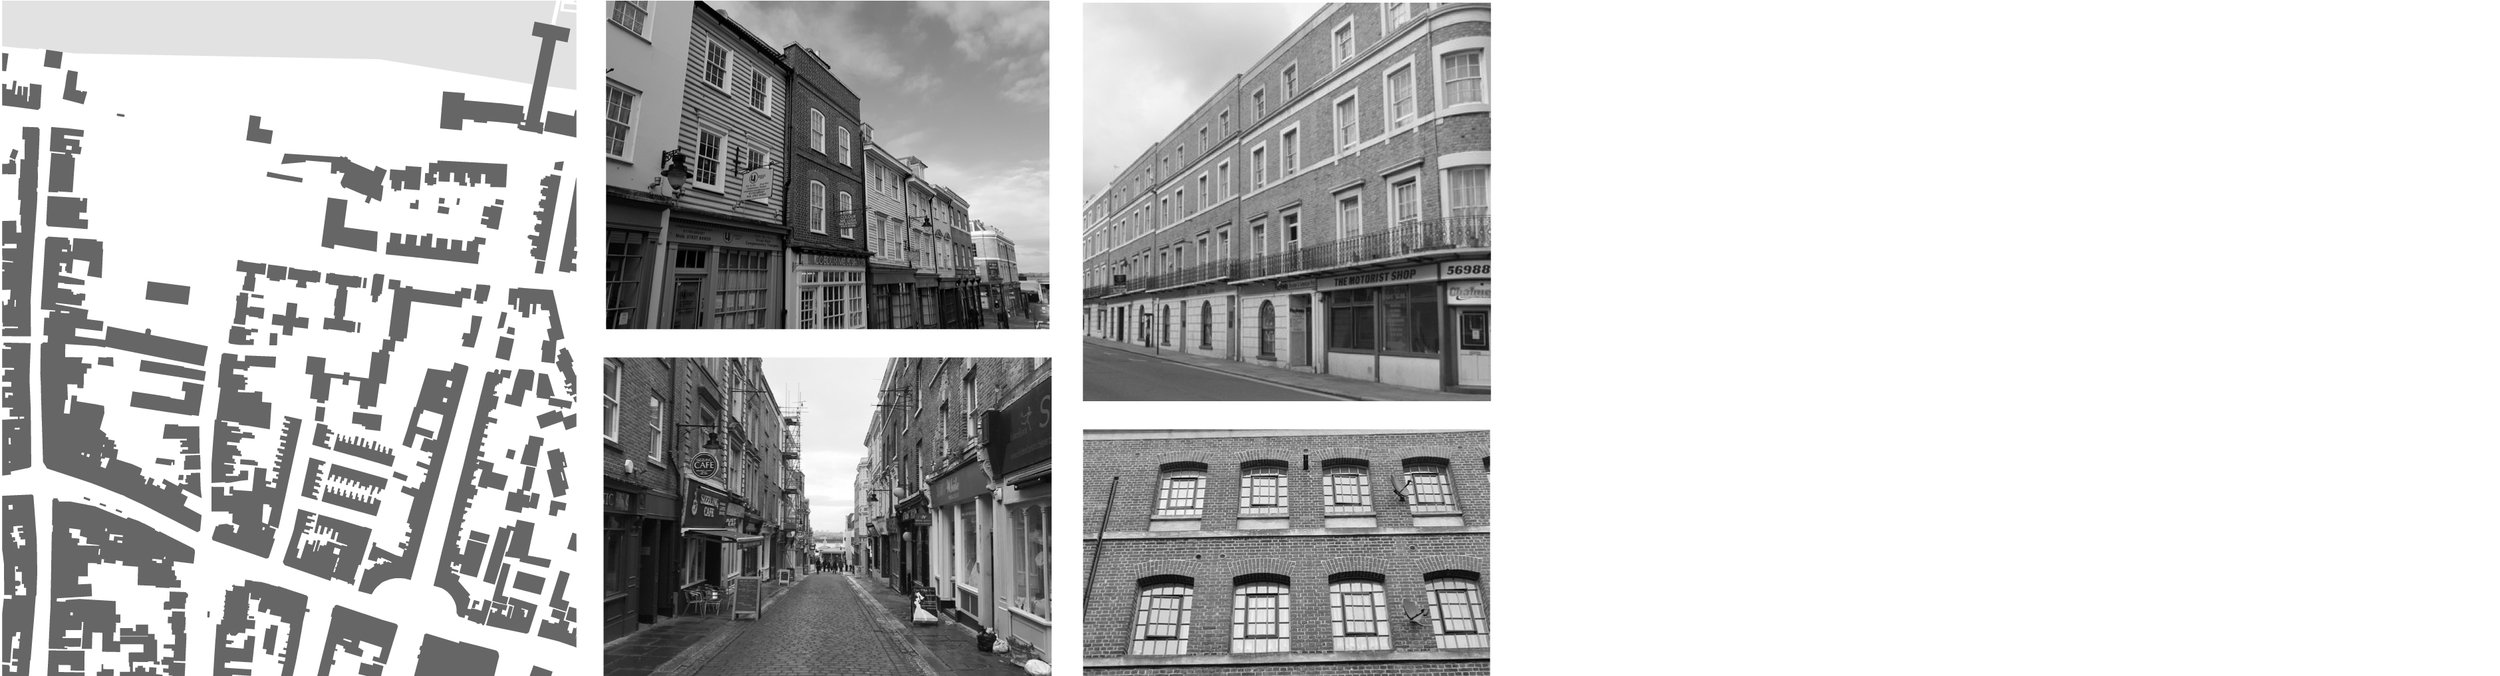 Memorable hierarchy of streets - Mixed use ground floors - Horizontal banding at floor levels